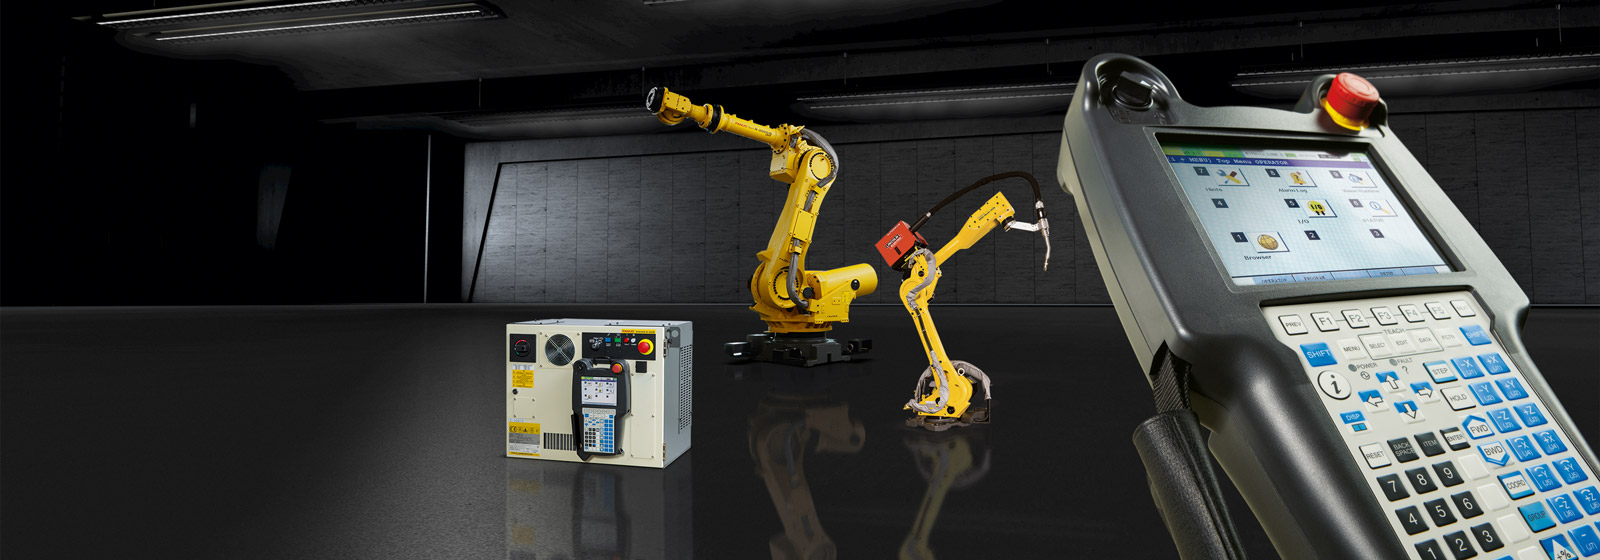 Accessories for FANUC robots